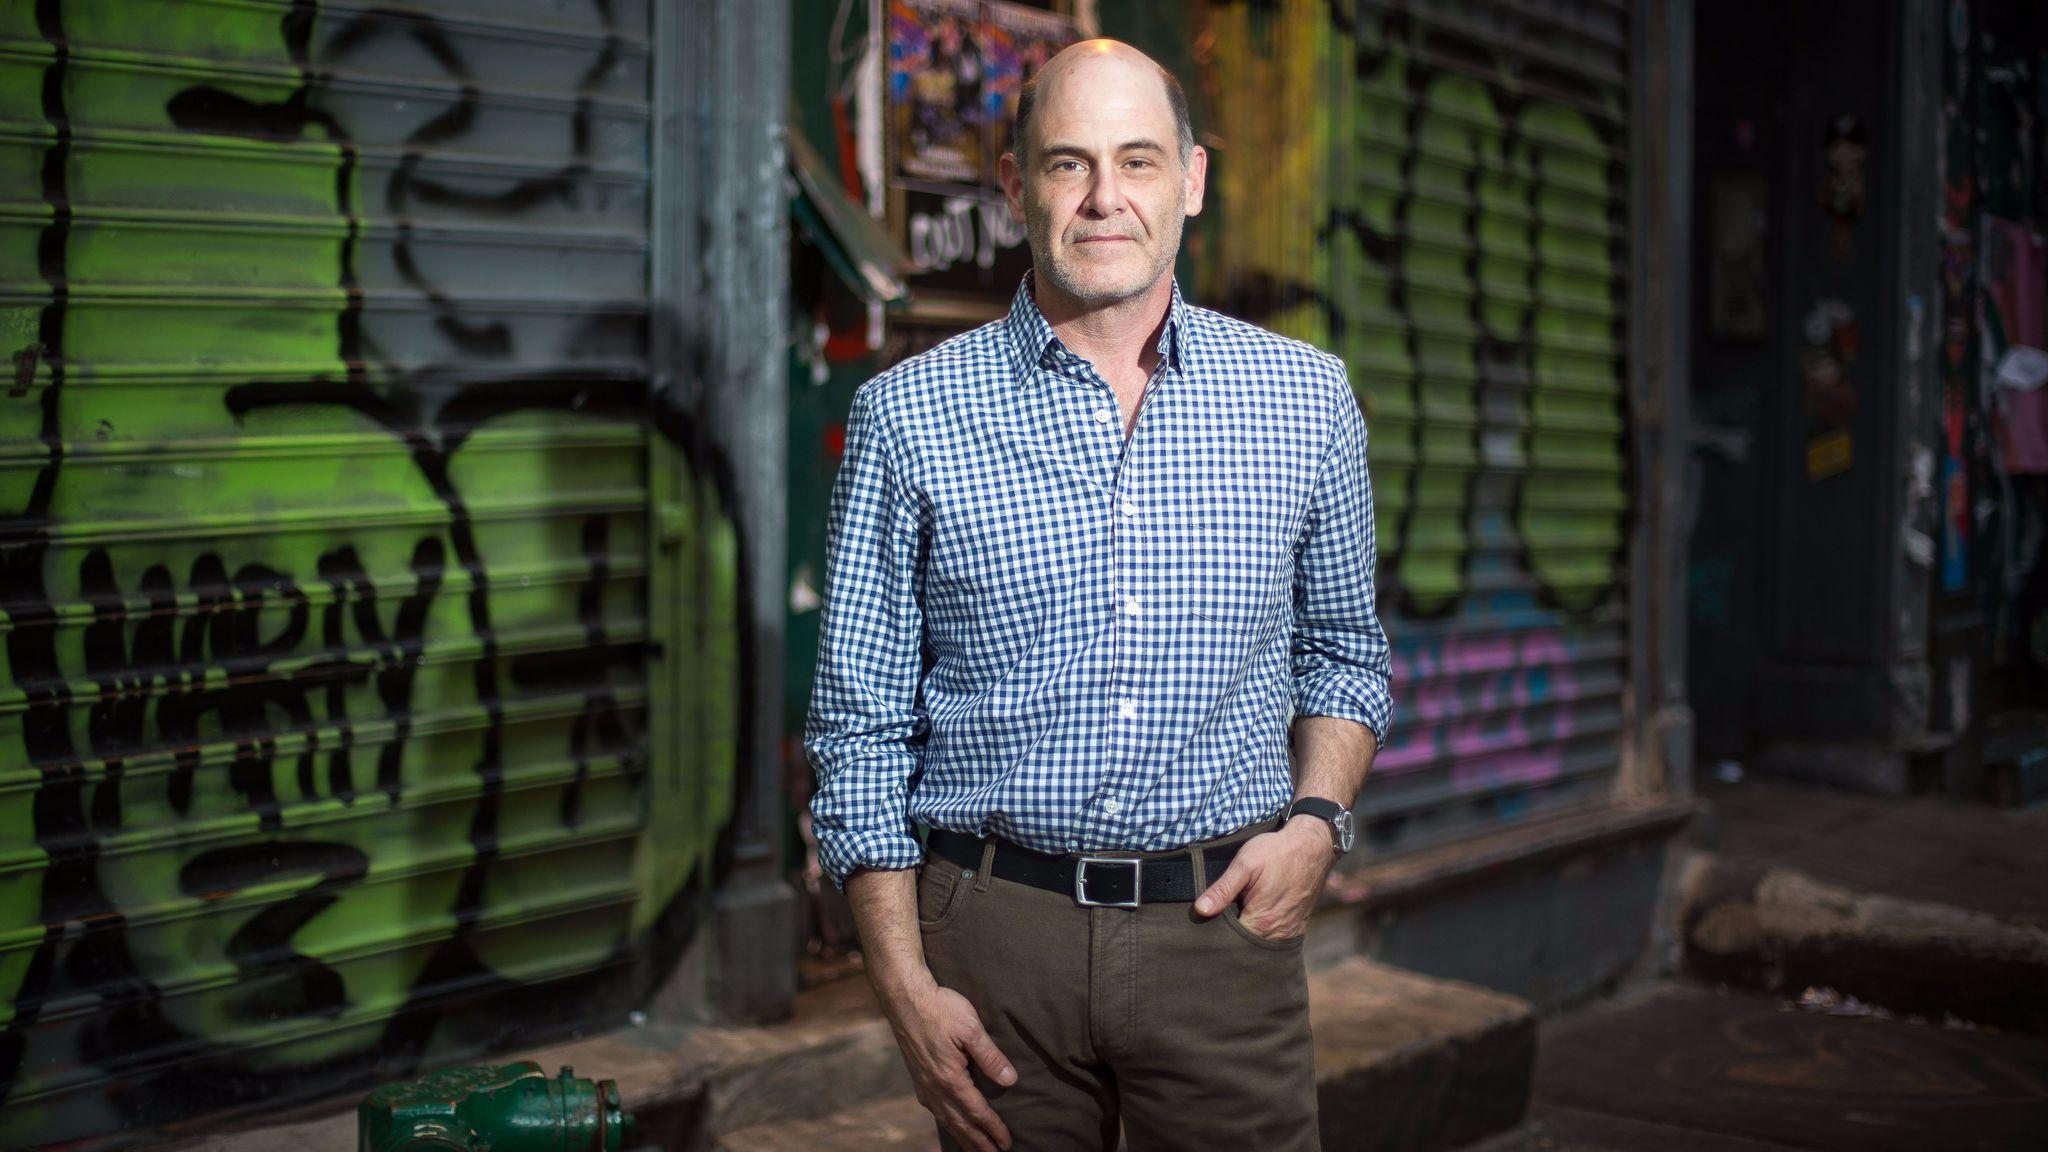 L.A. book reading with 'Mad Men' creator Matthew Weiner still planned amid harassment allegation